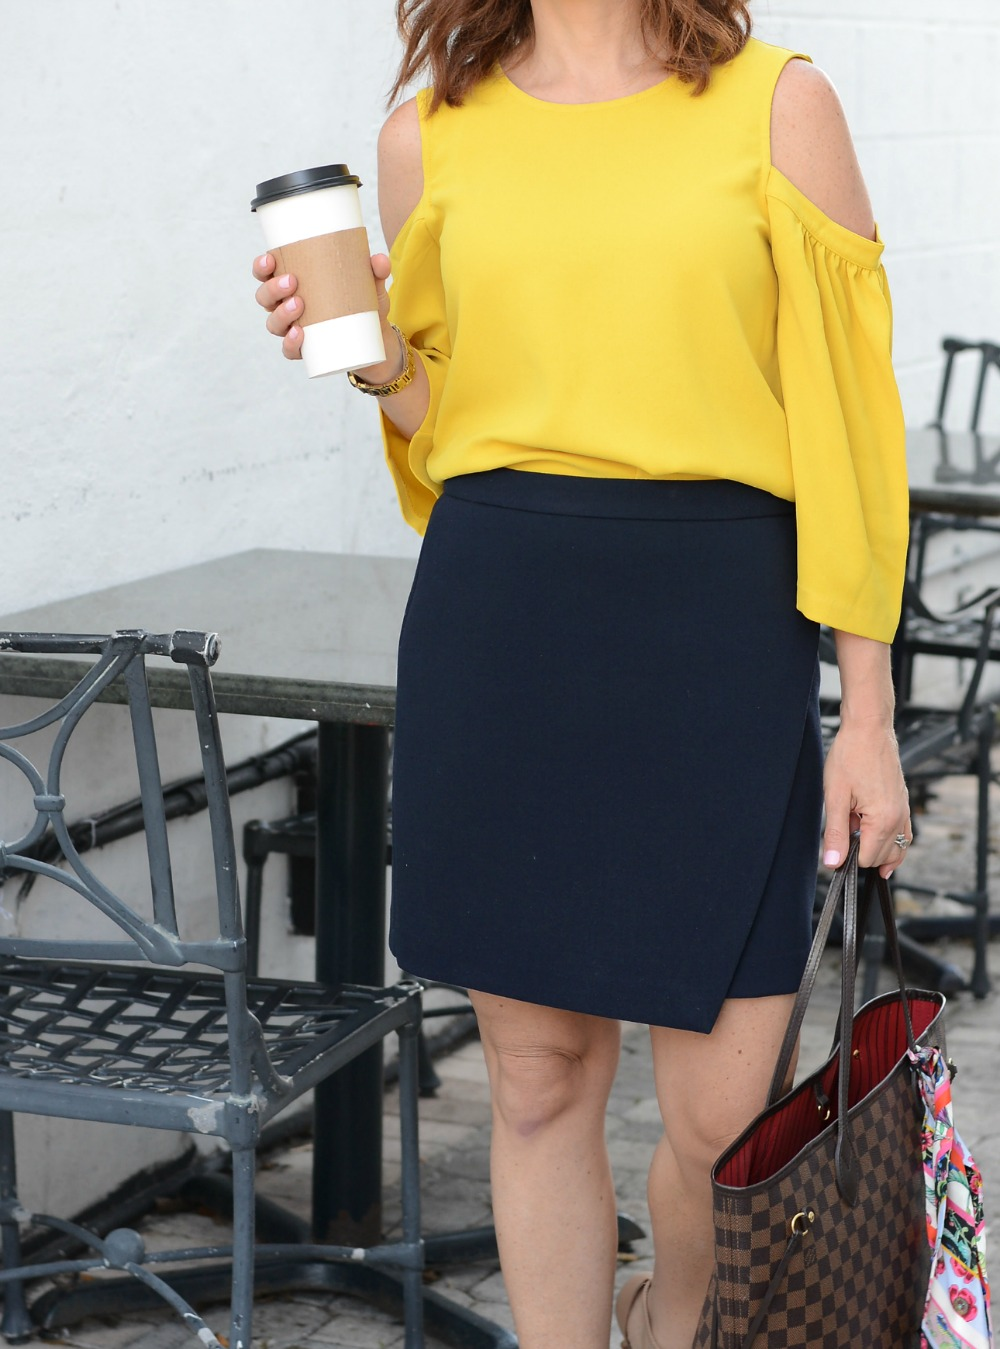 Florida blogger and mom shares her work outfit inspiration // the modern savvy